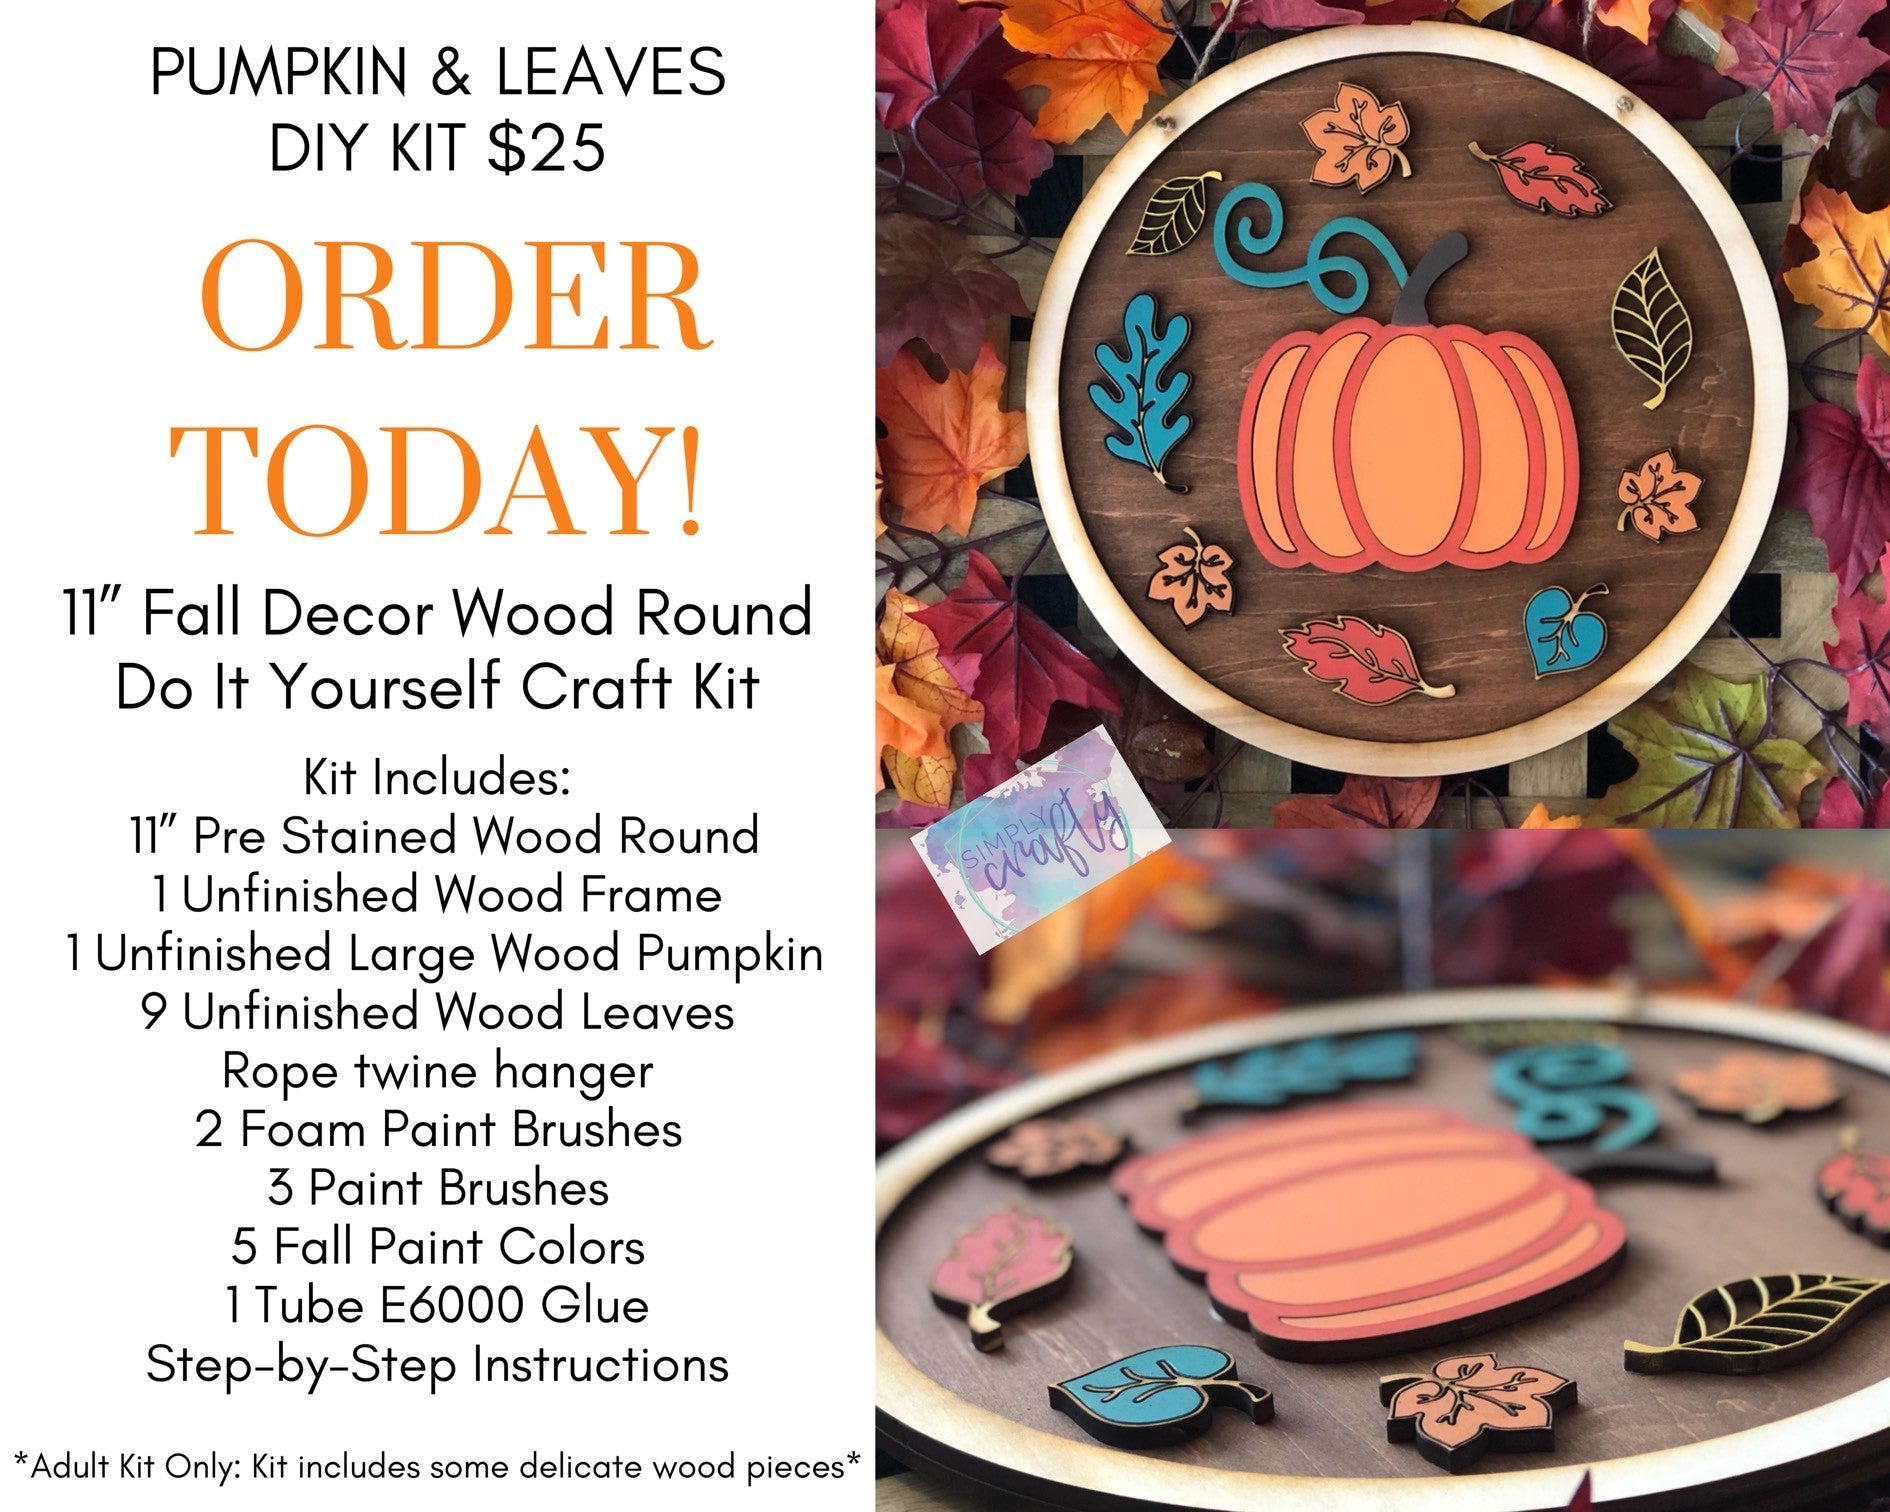 Pumpkin & Leaves DIY Kit